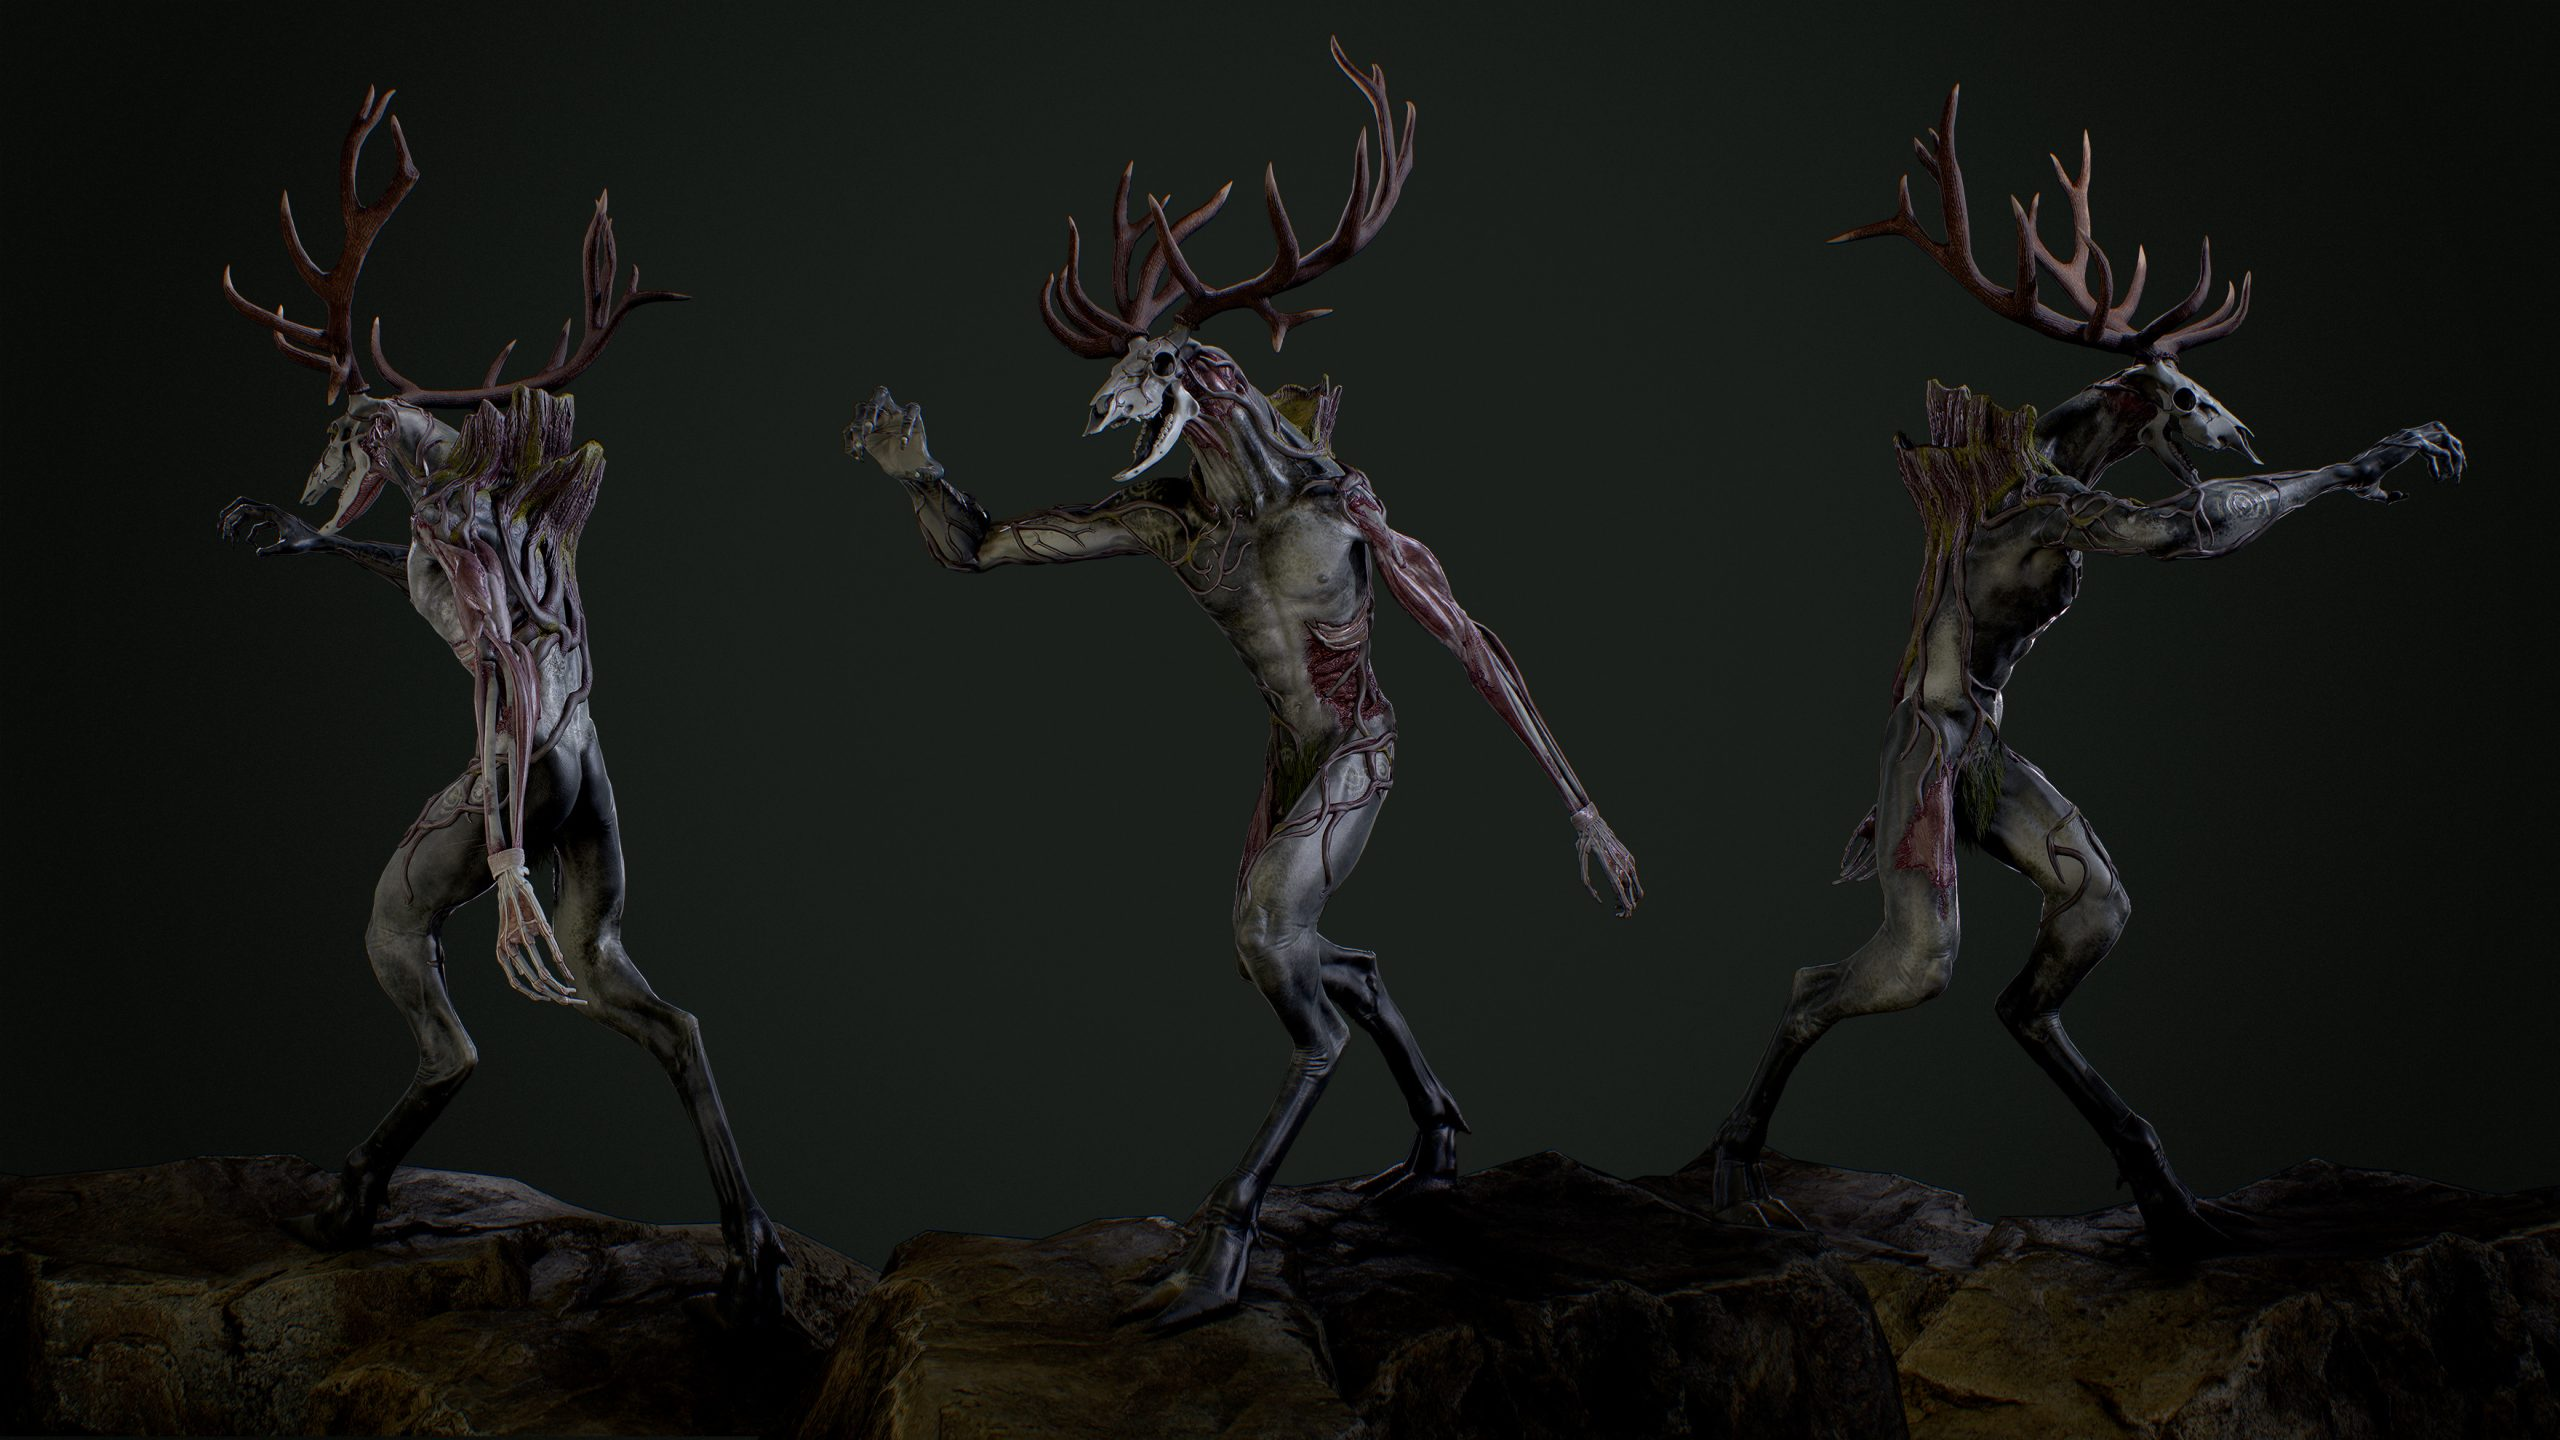 three body shots of a humanoid woodland creature on two legs with a deer skull head